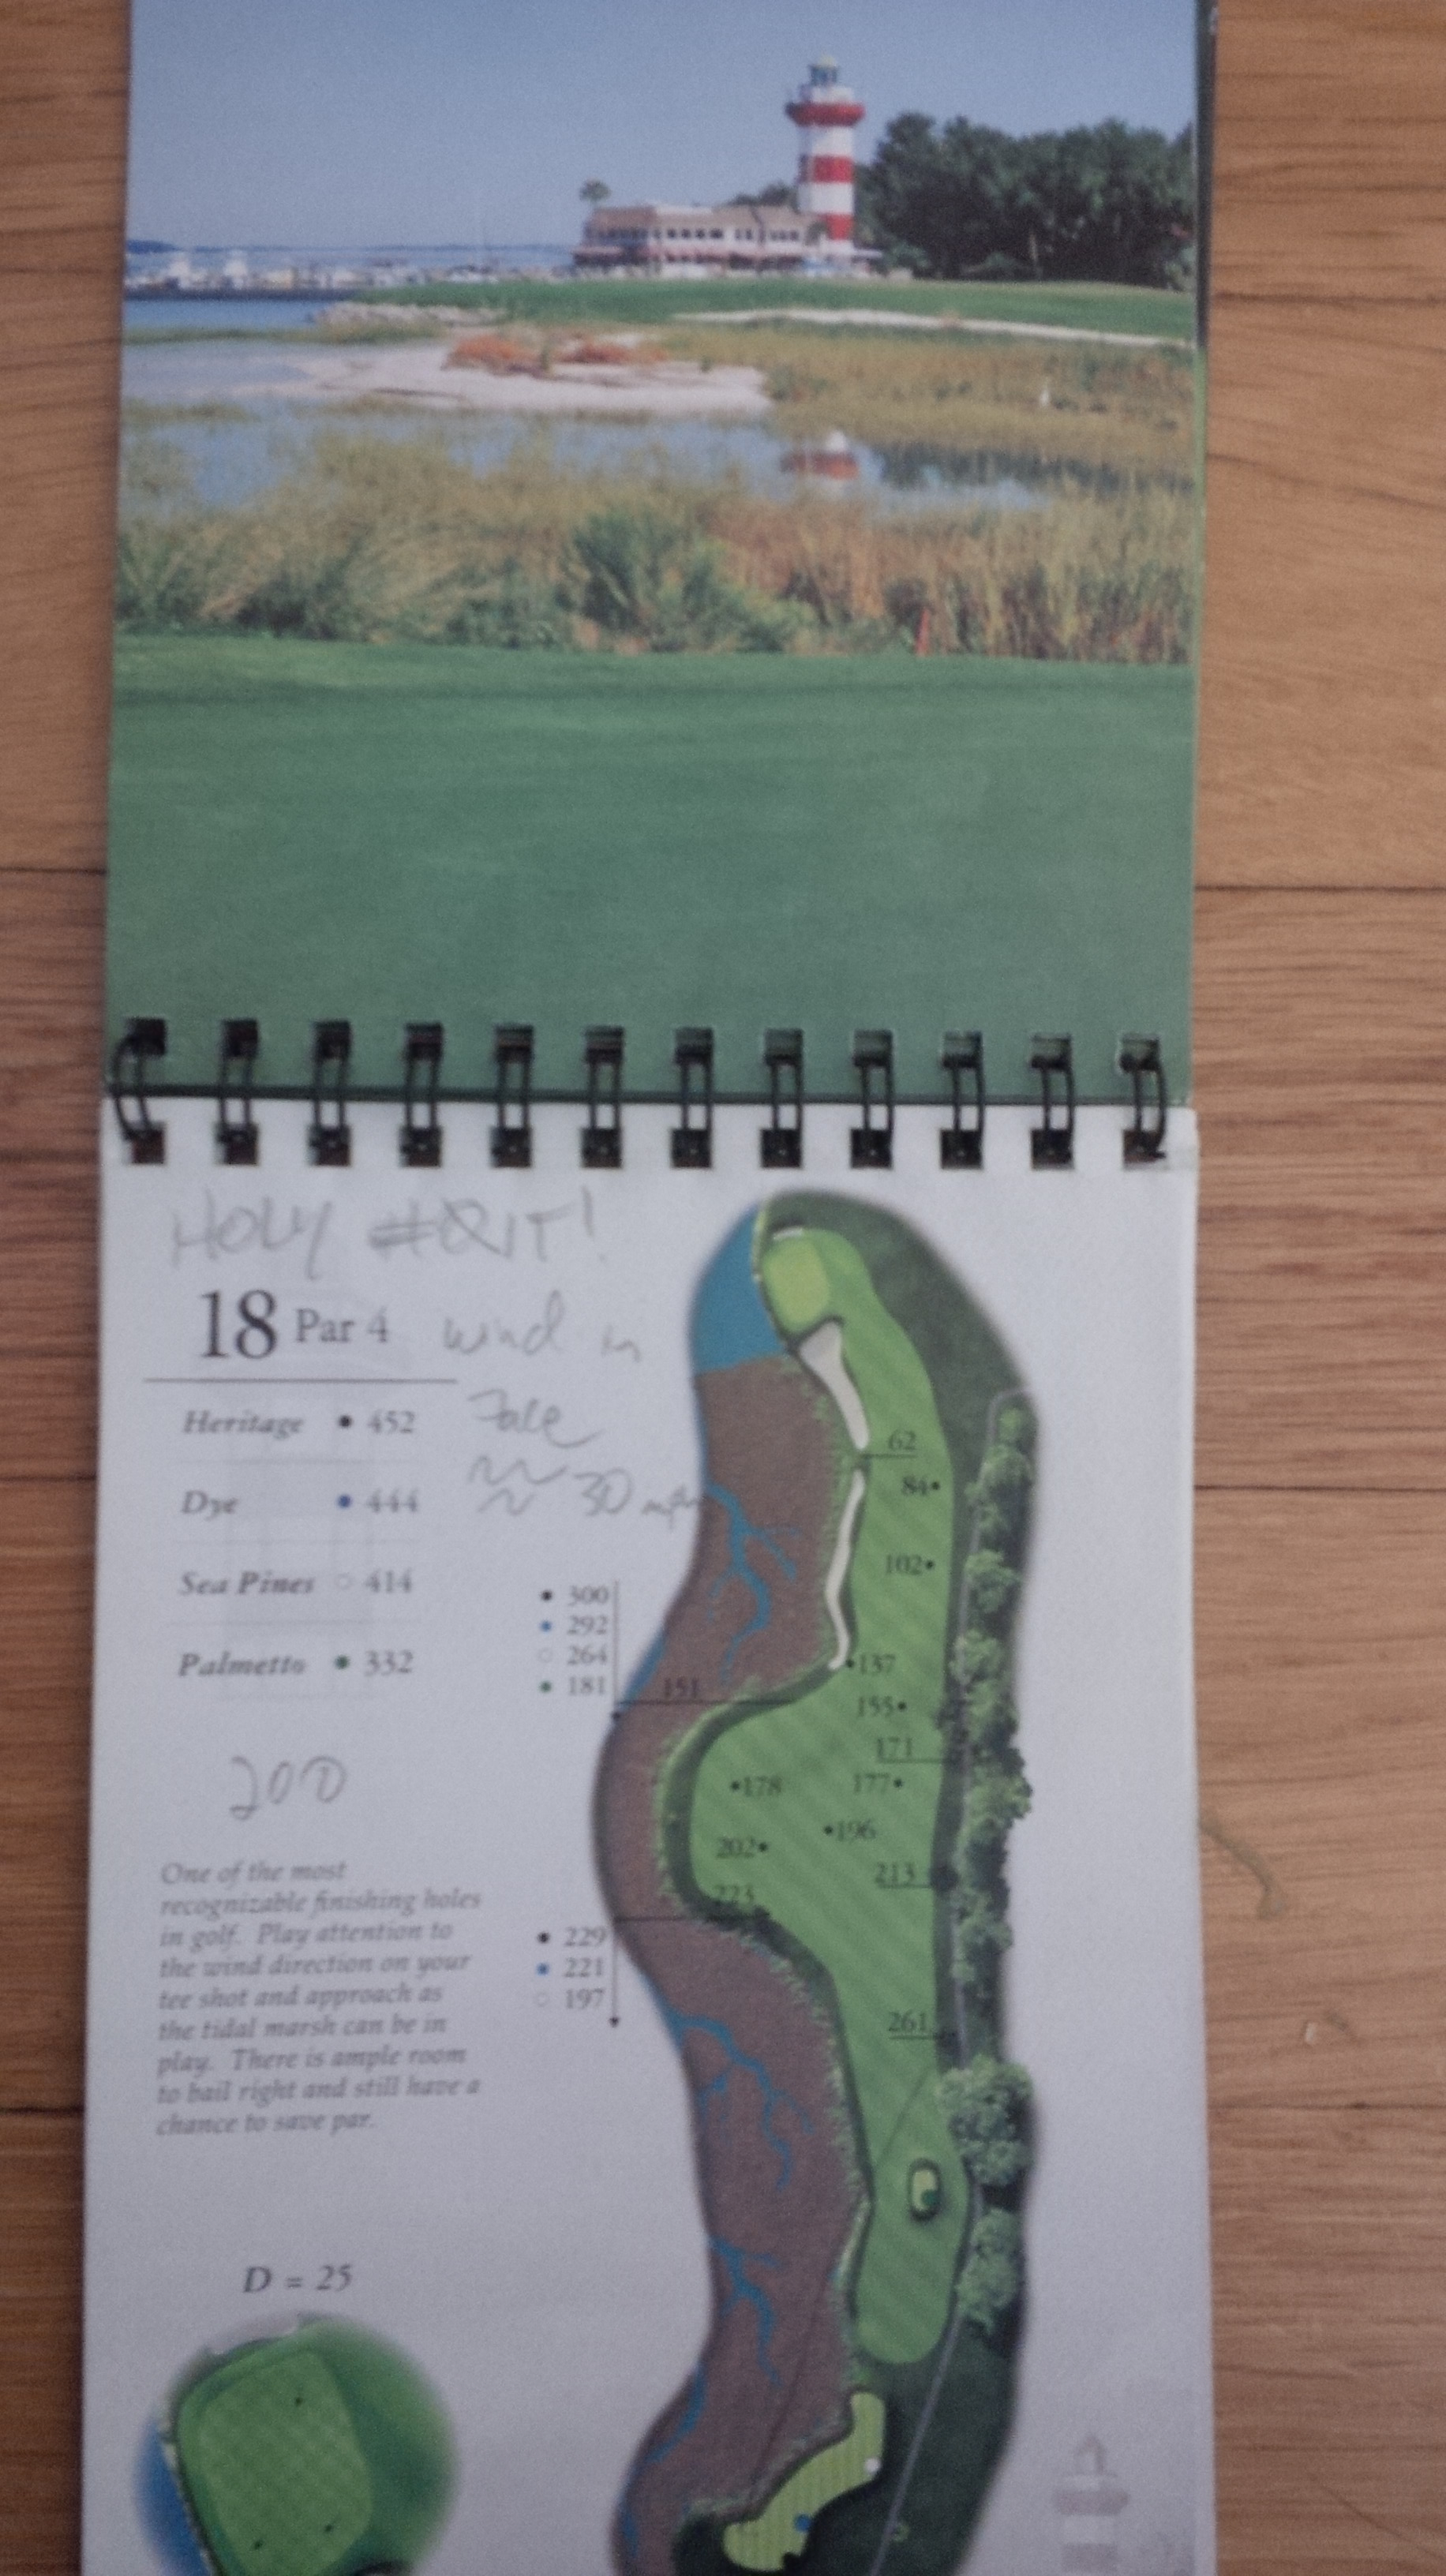 Lasers apps books and sprinkler heads february poll question when playing a course for the first time i love to have a yardage book solutioingenieria Gallery